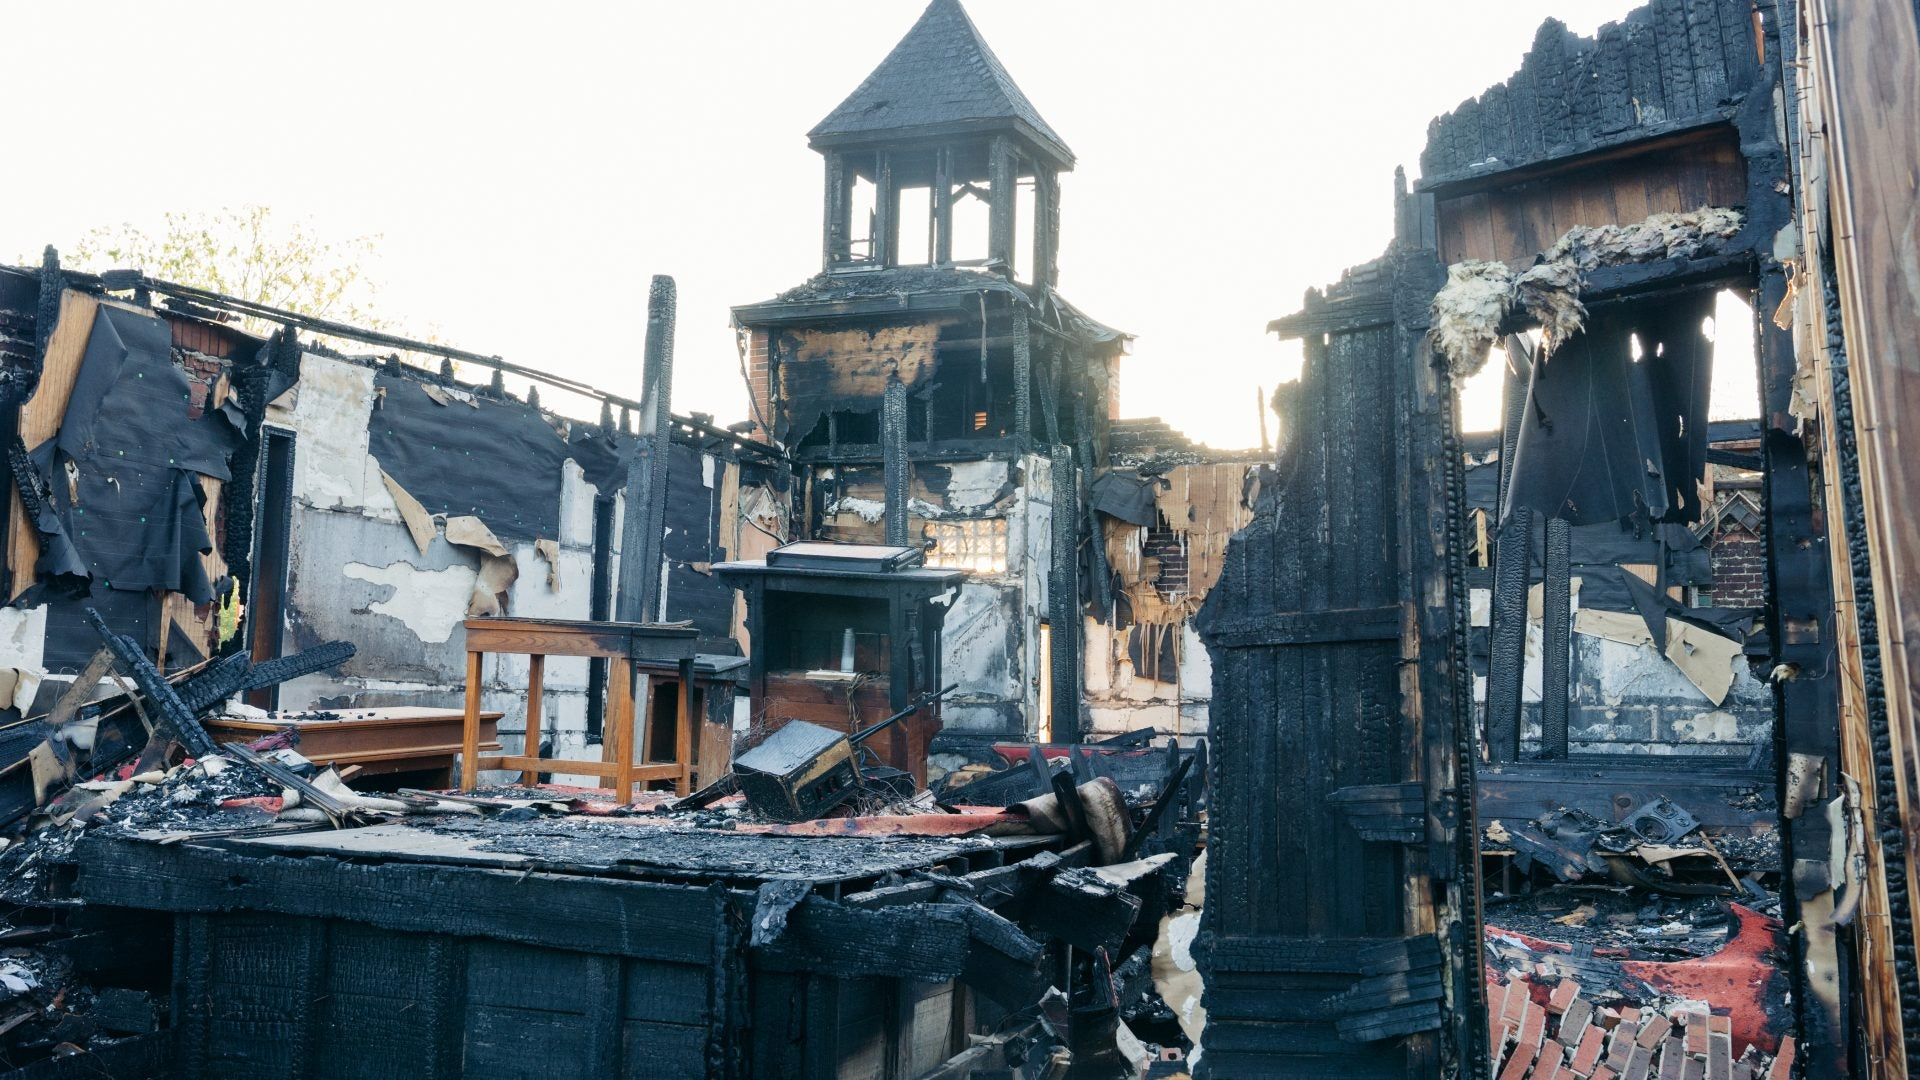 Louisiana Church Arson Suspect Charged With Hate Crime